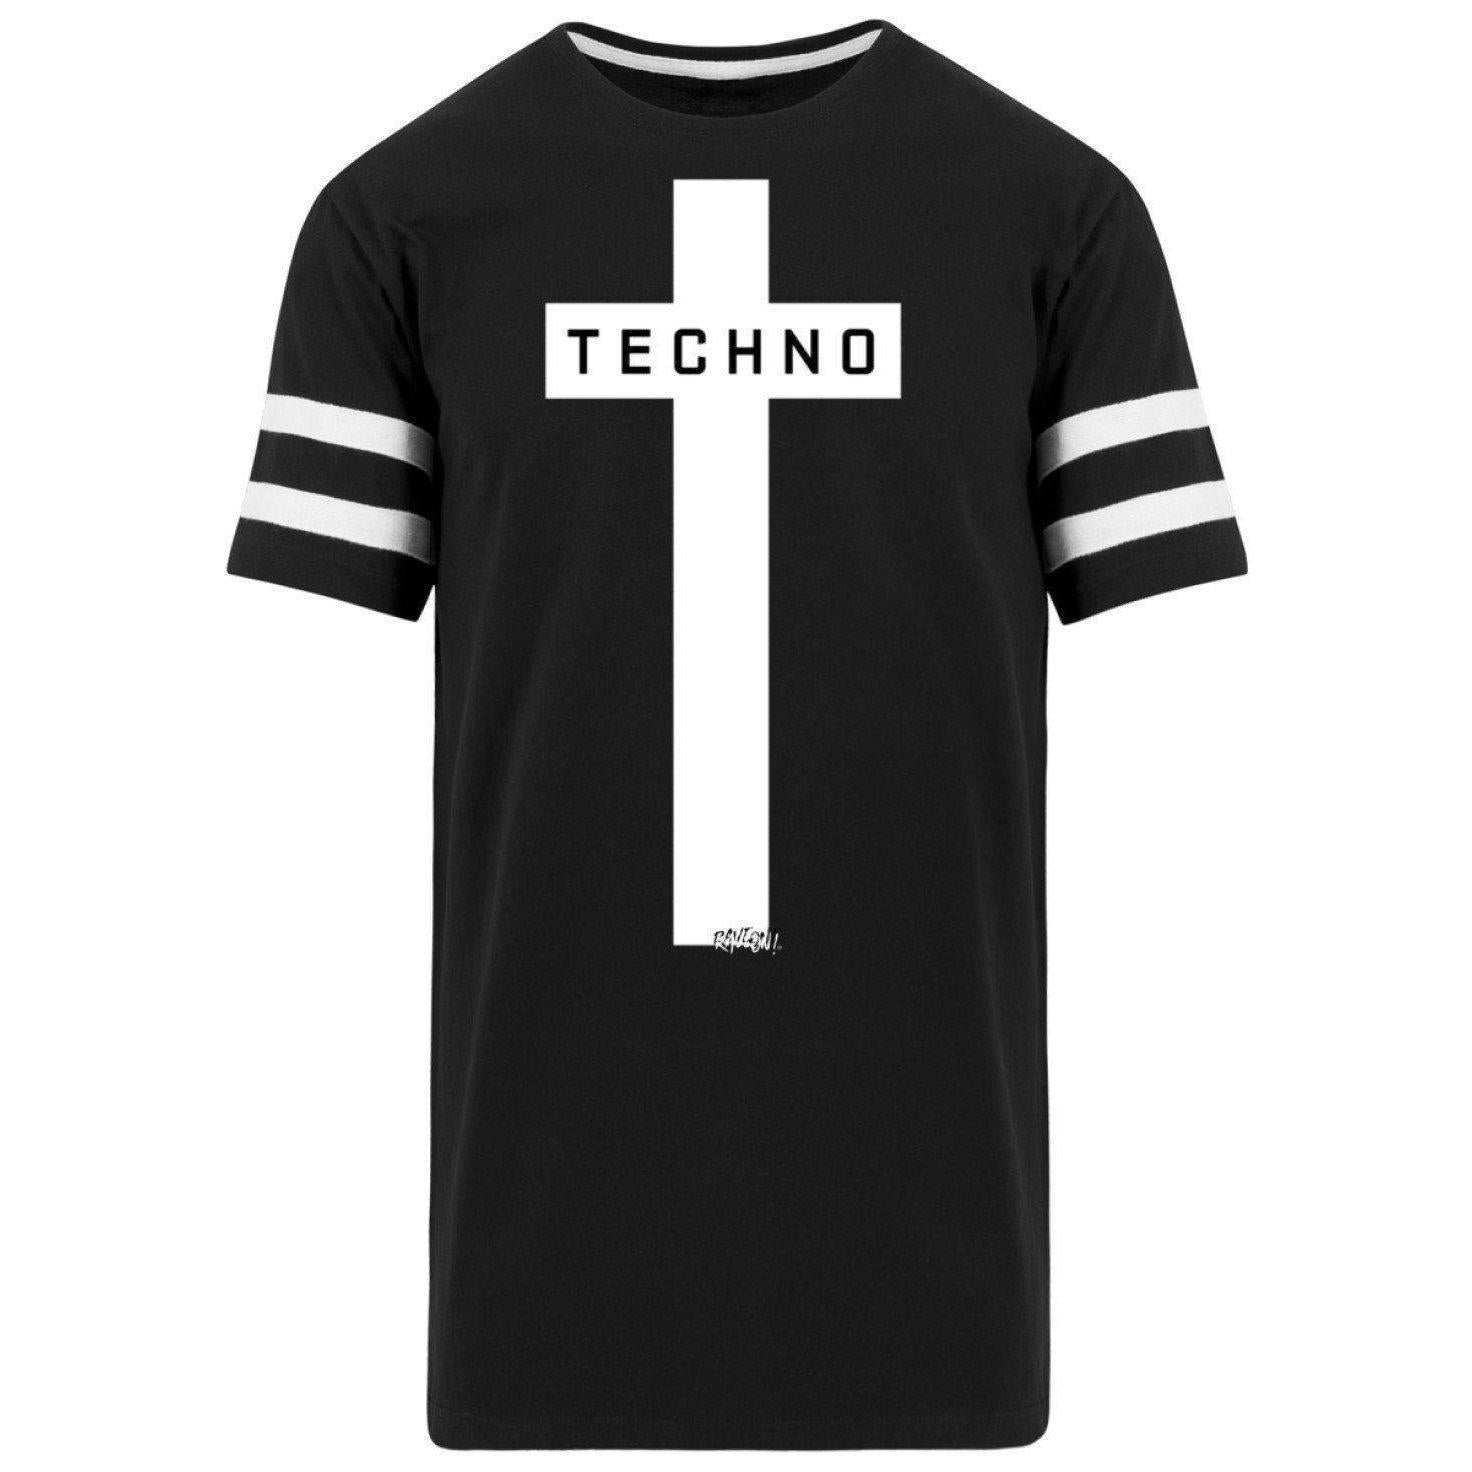 Techno Cross - Rave On!® - Men's Striped Long Shirt Striped Long Shirt Black / S - Rave On!® the club & techno scene shop for cool young fashion streetwear style & fashion outfits + sexy festival 420 stuff